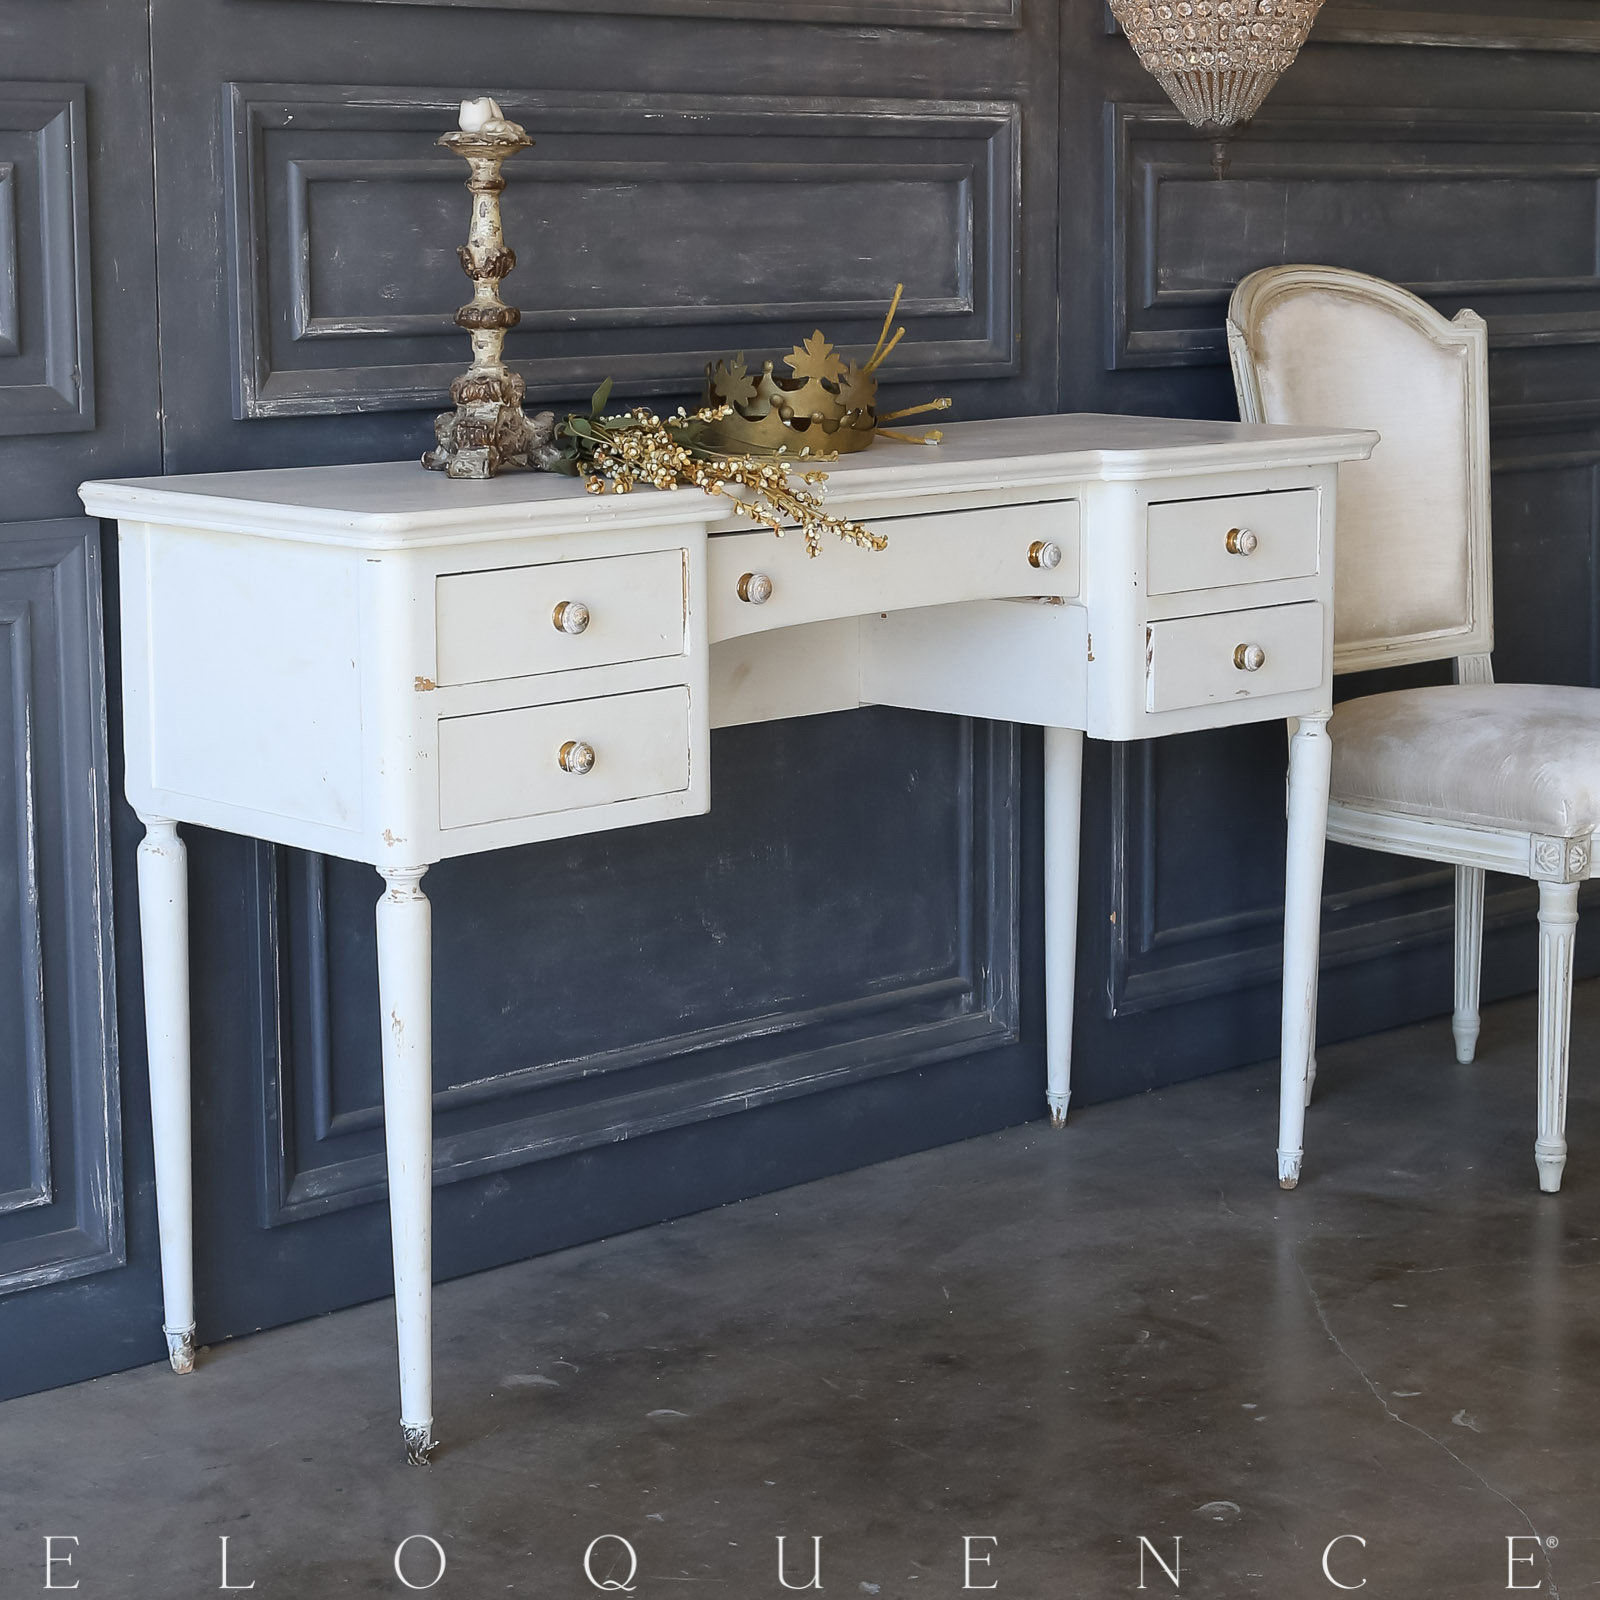 Eloquence® Vintage Pale Dove Vanity: 1950